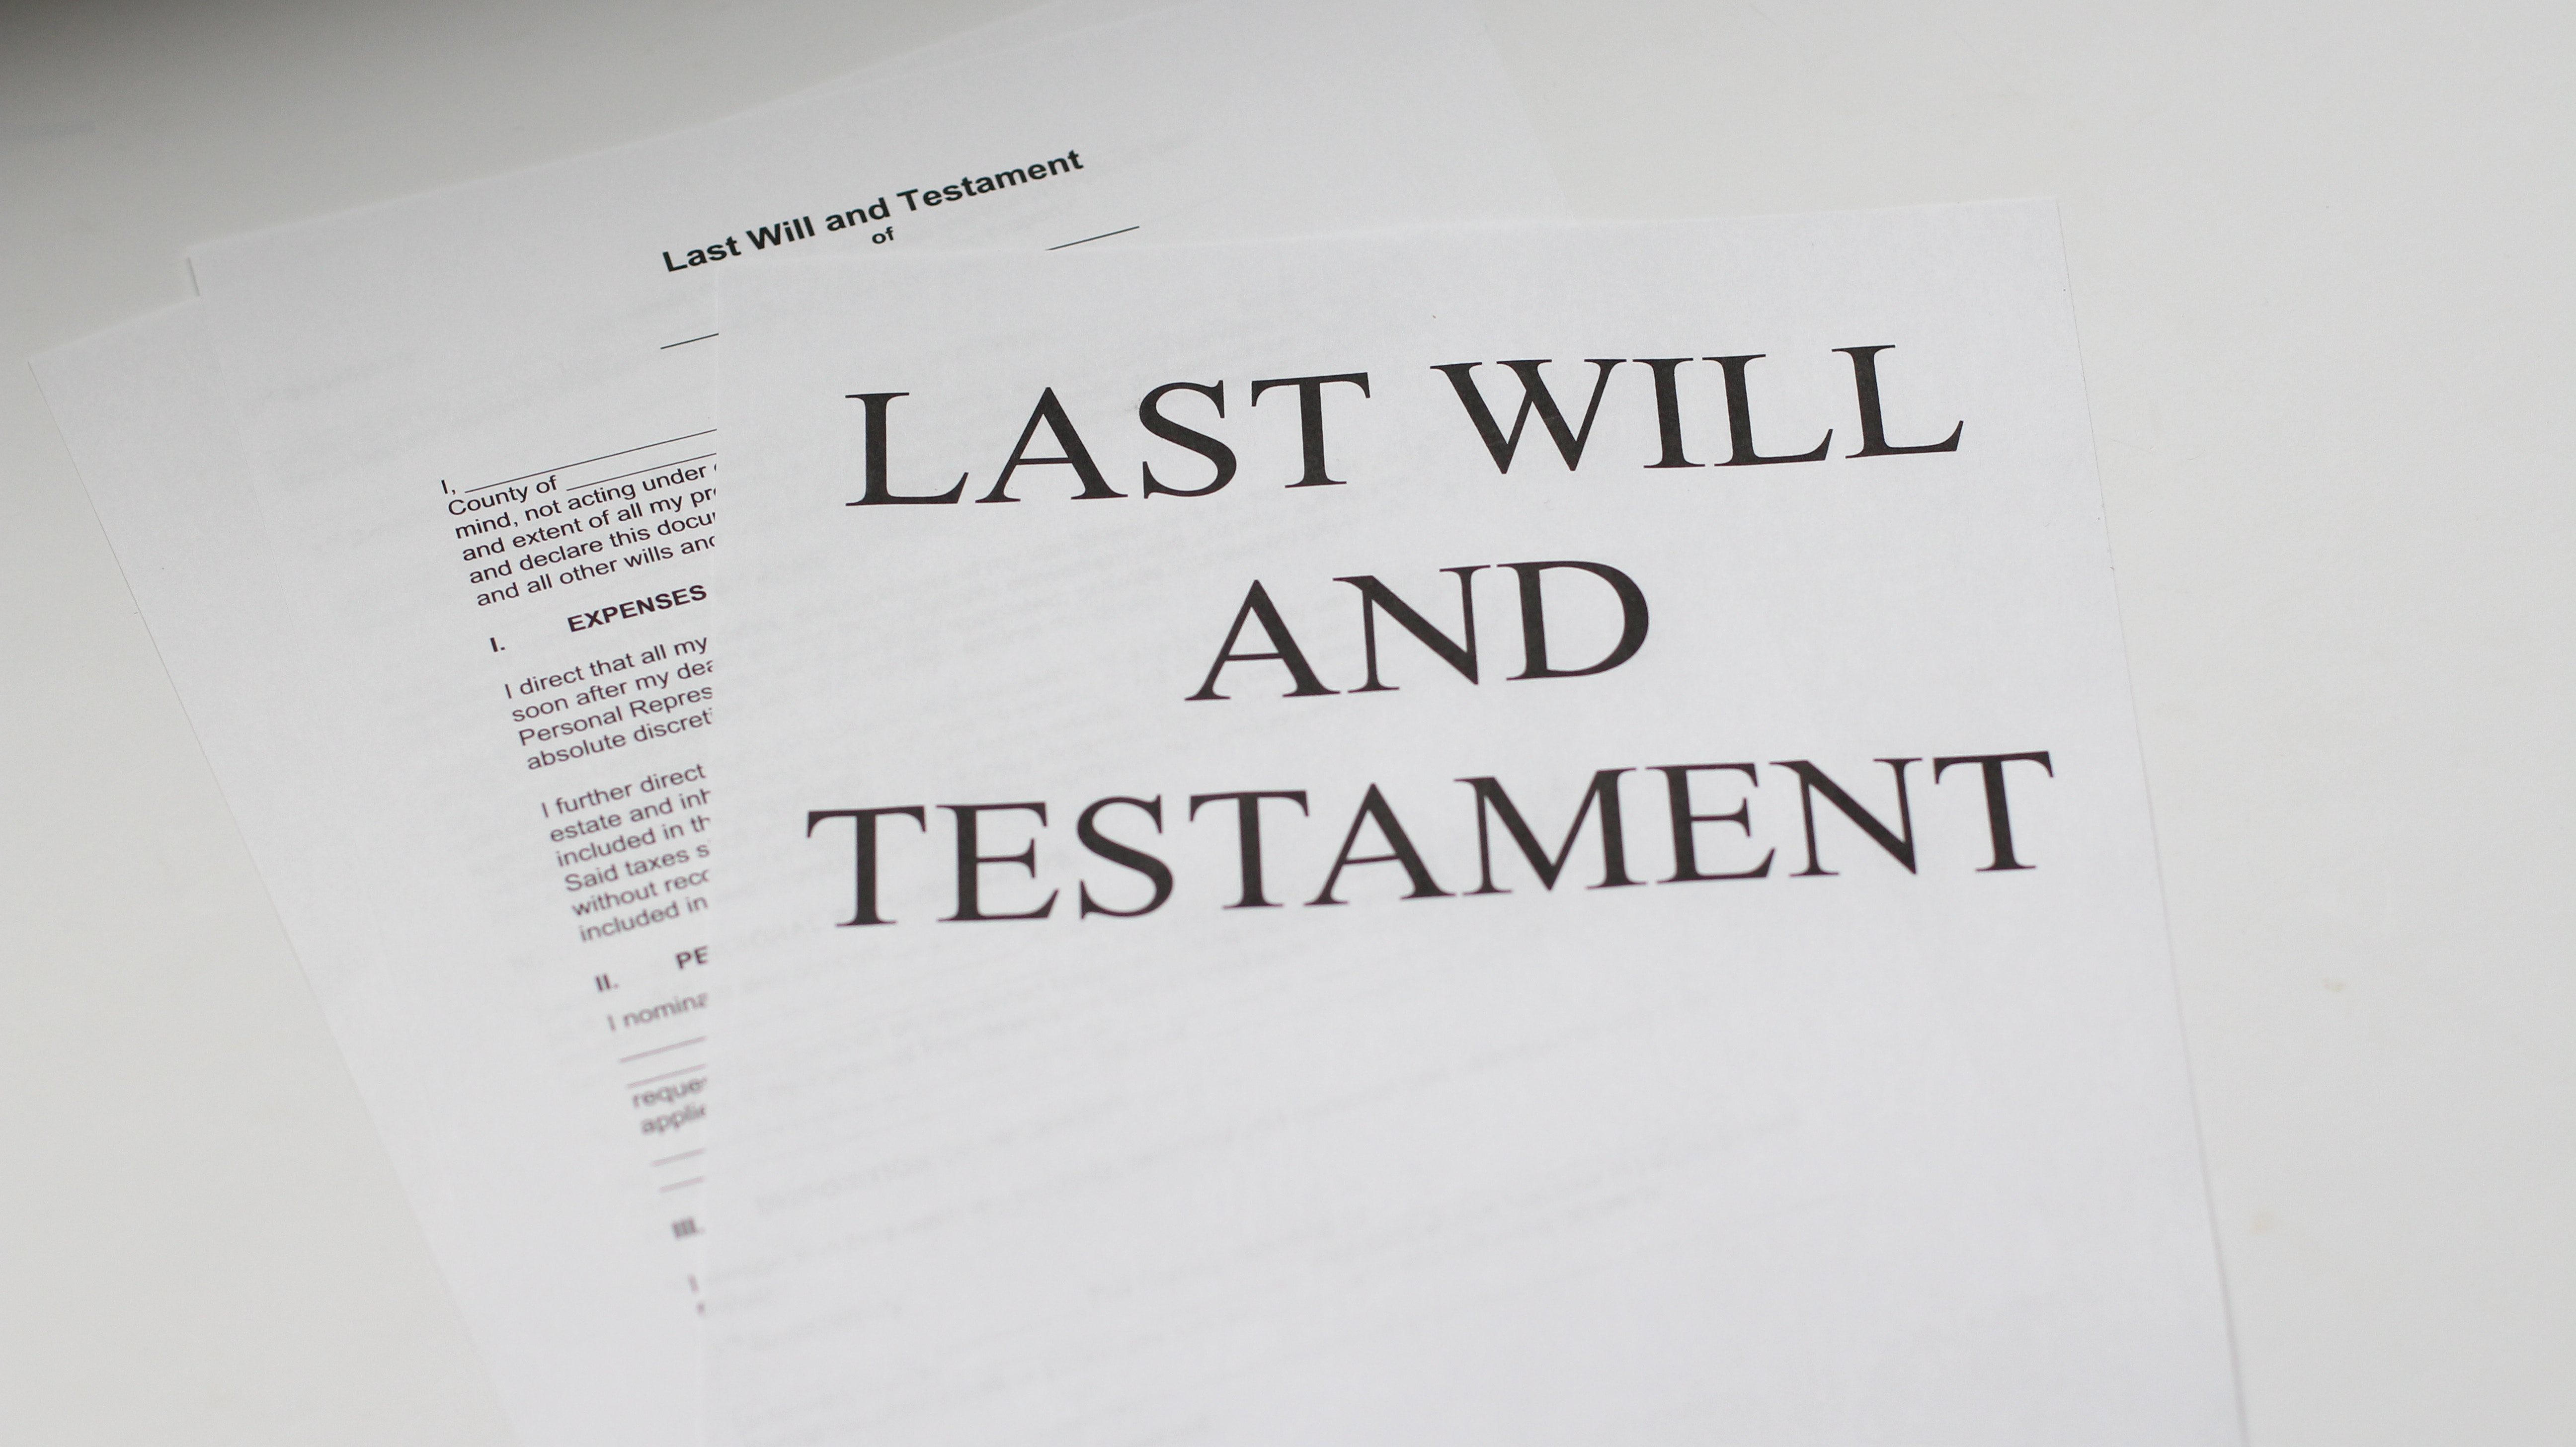 Is a Separated Spouse Entitled to a Share in the Estate of a Deceased Spouse?